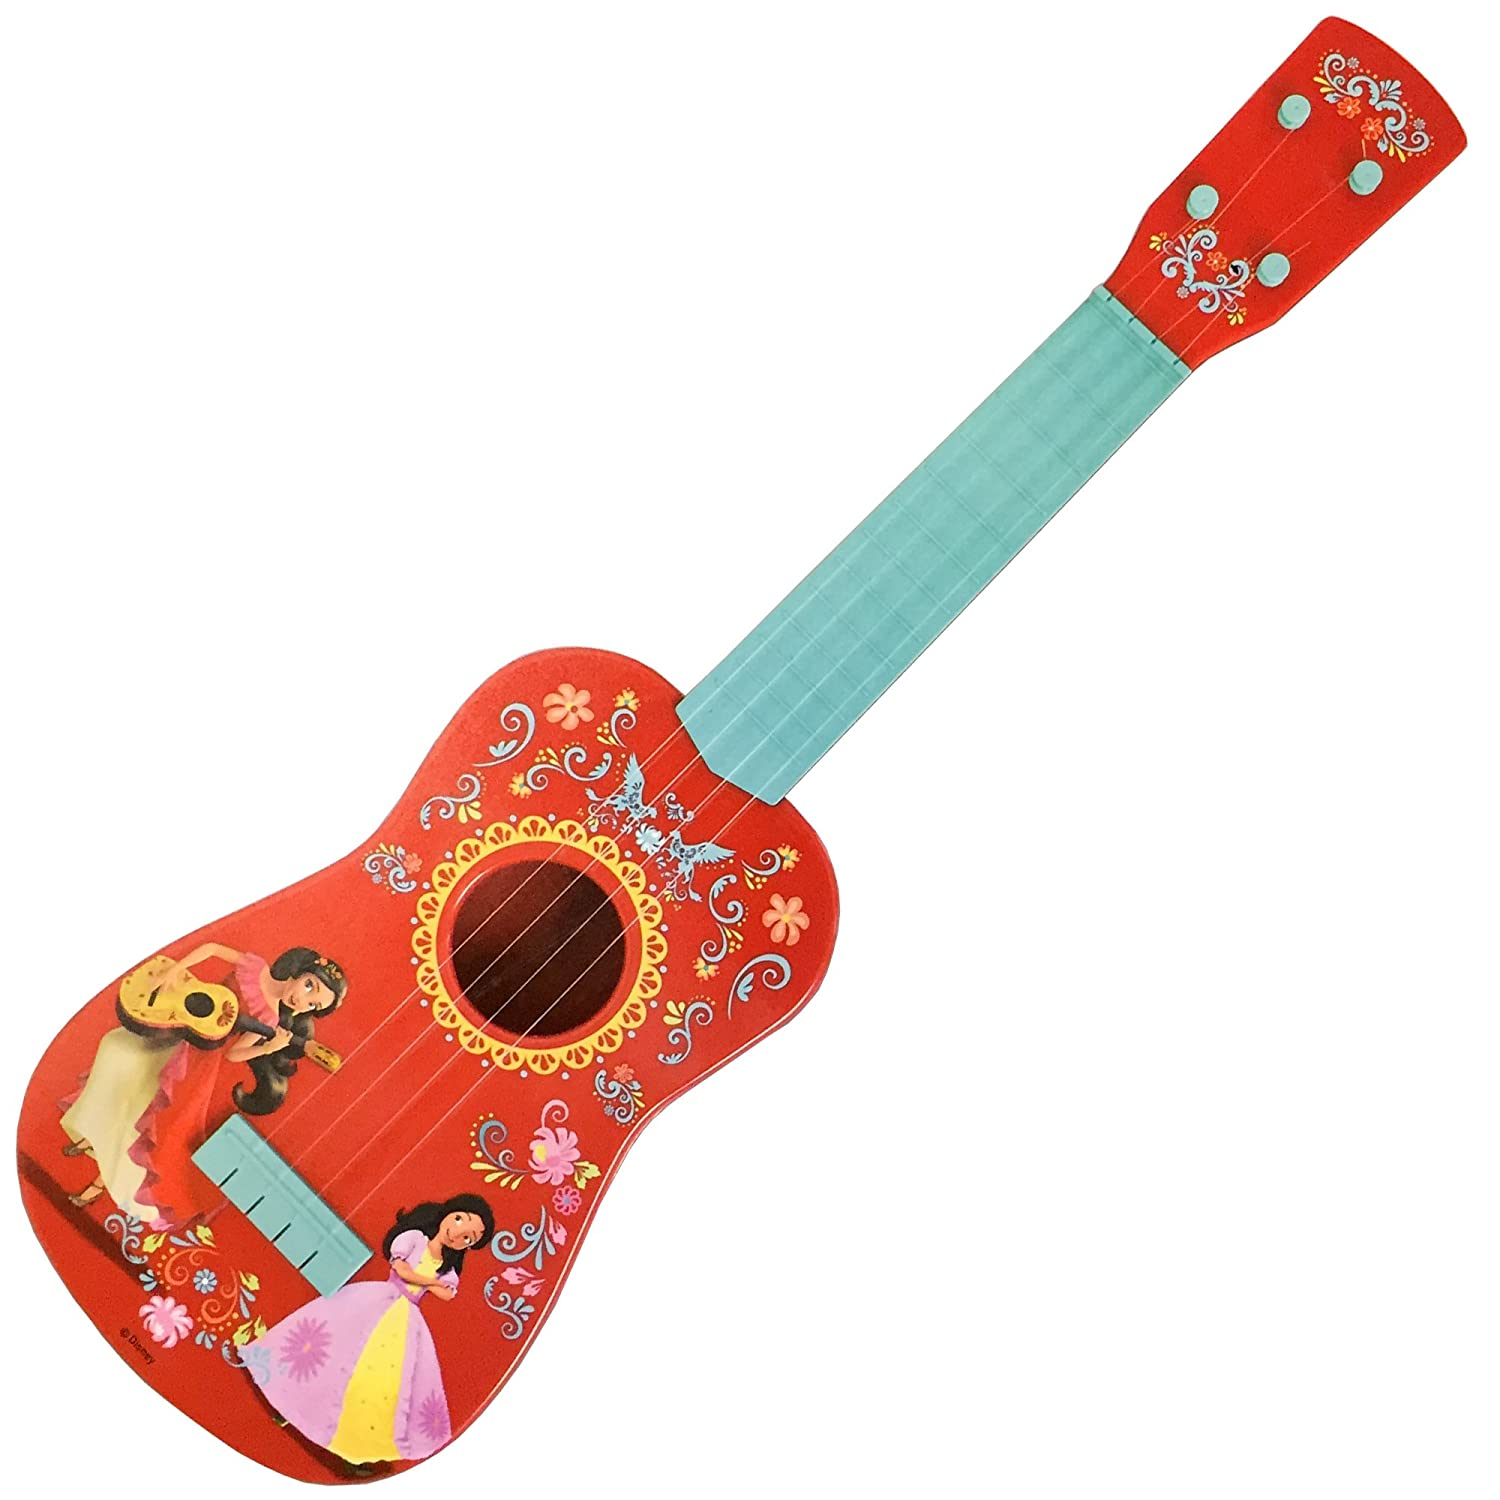 Amazon Guitars & Strings Toys & Games